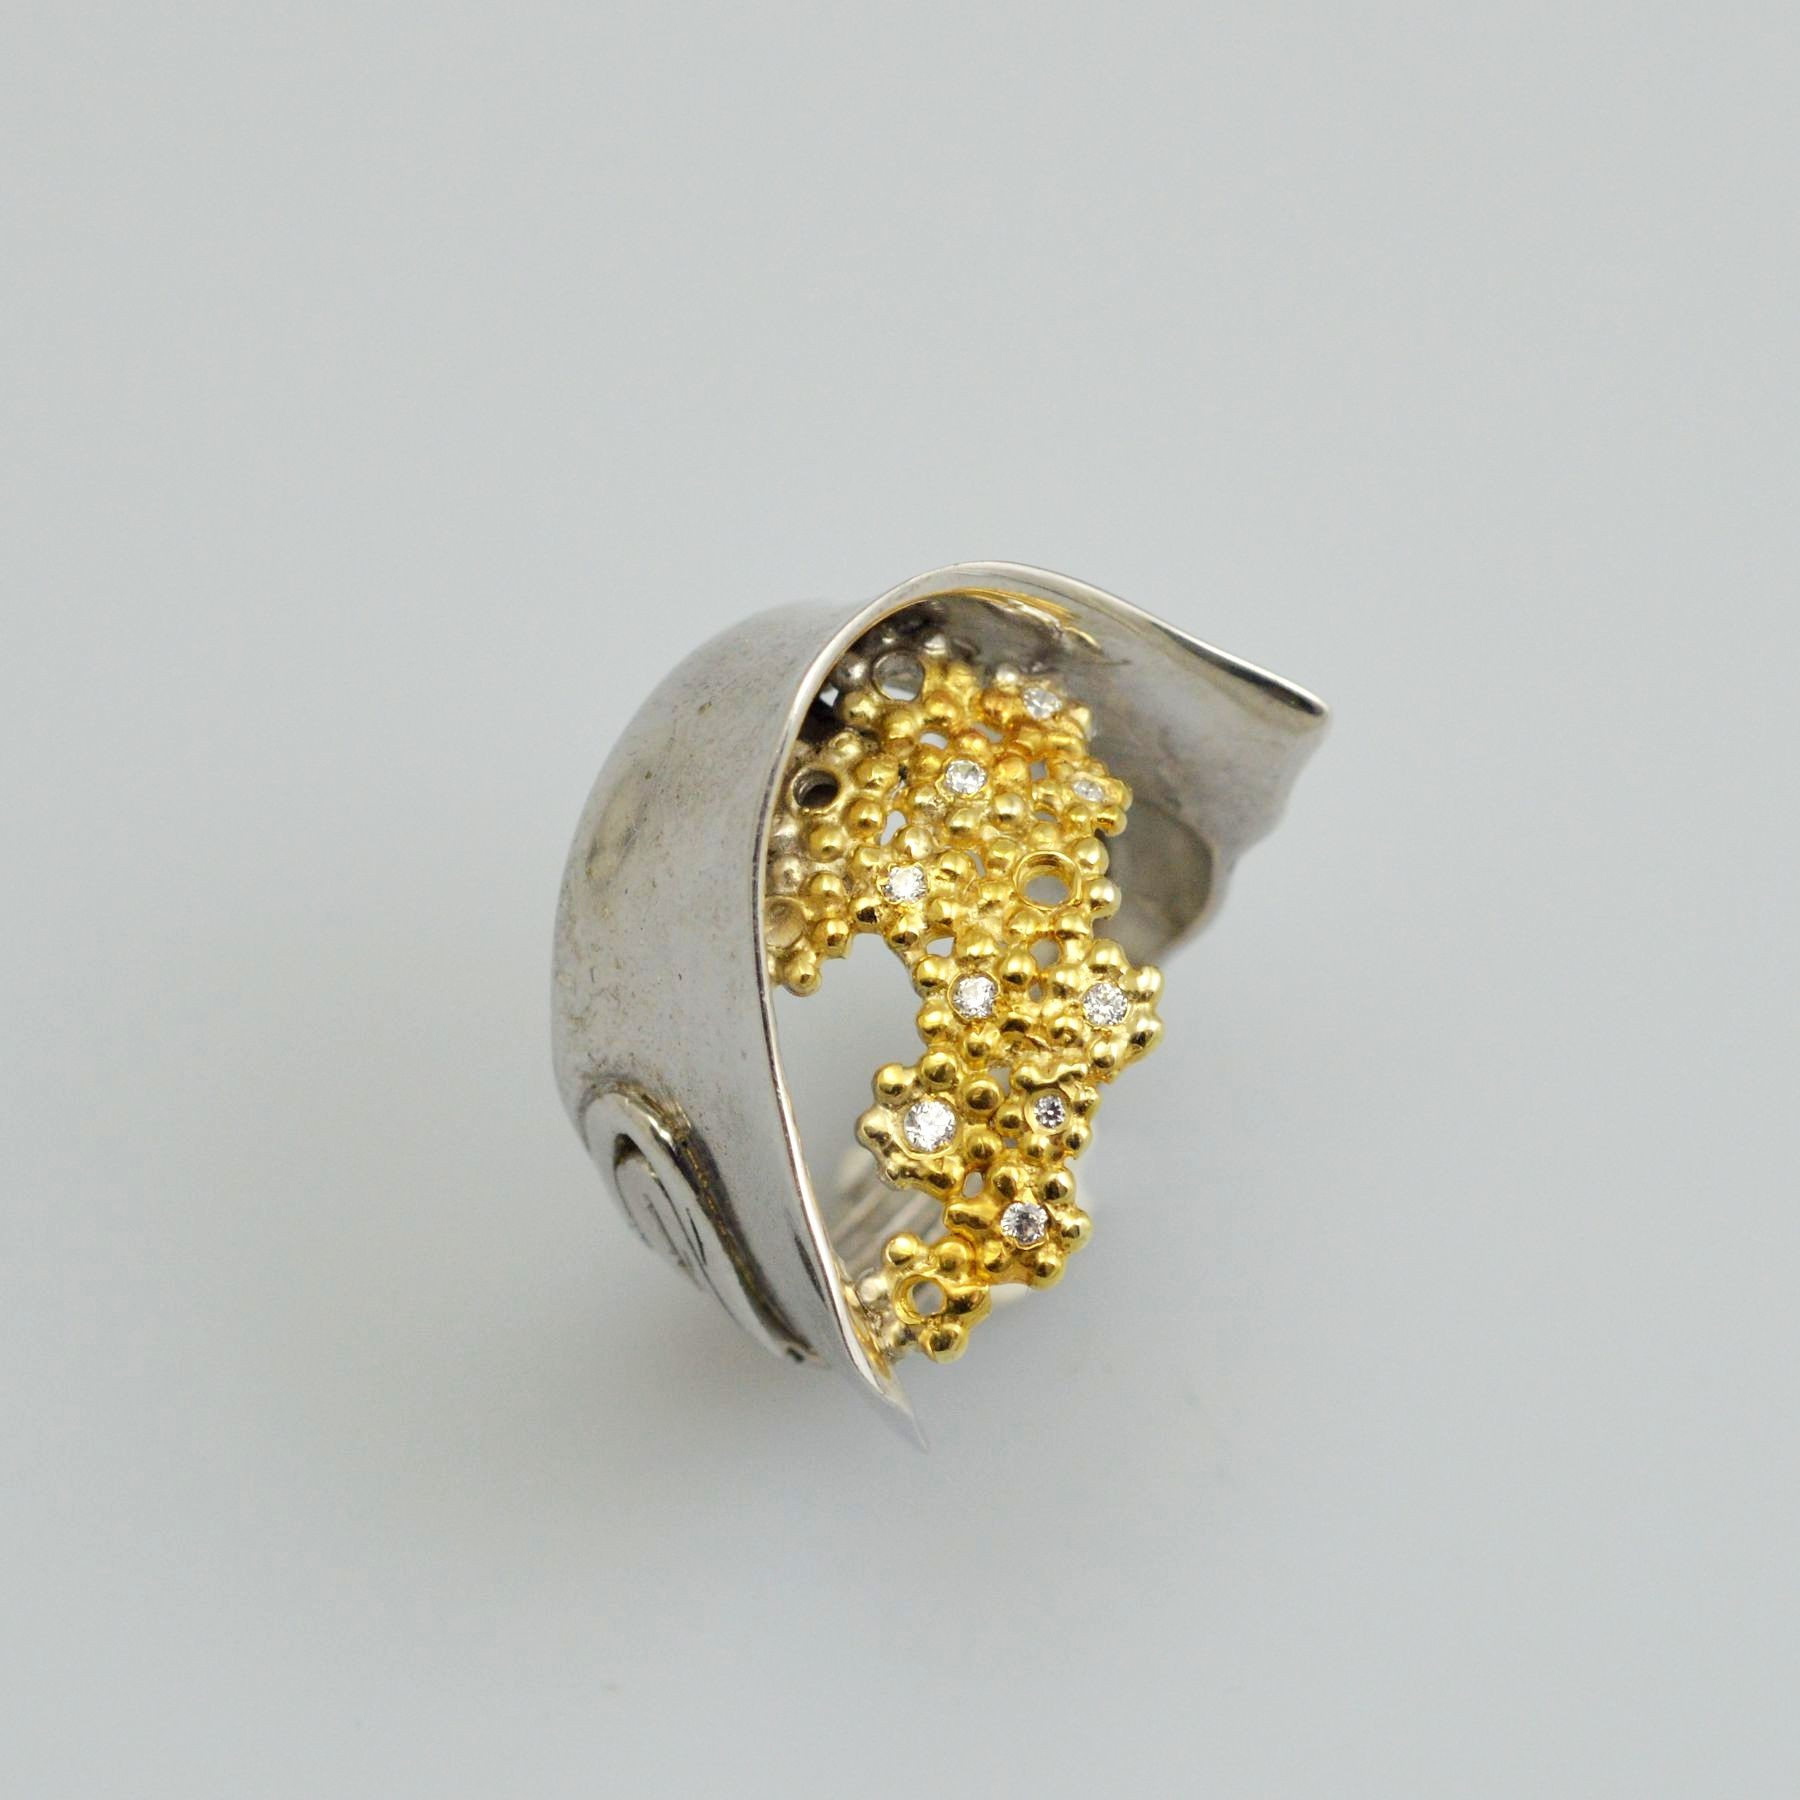 Silver ring 925 rhodium and gold plated with synthetic stones